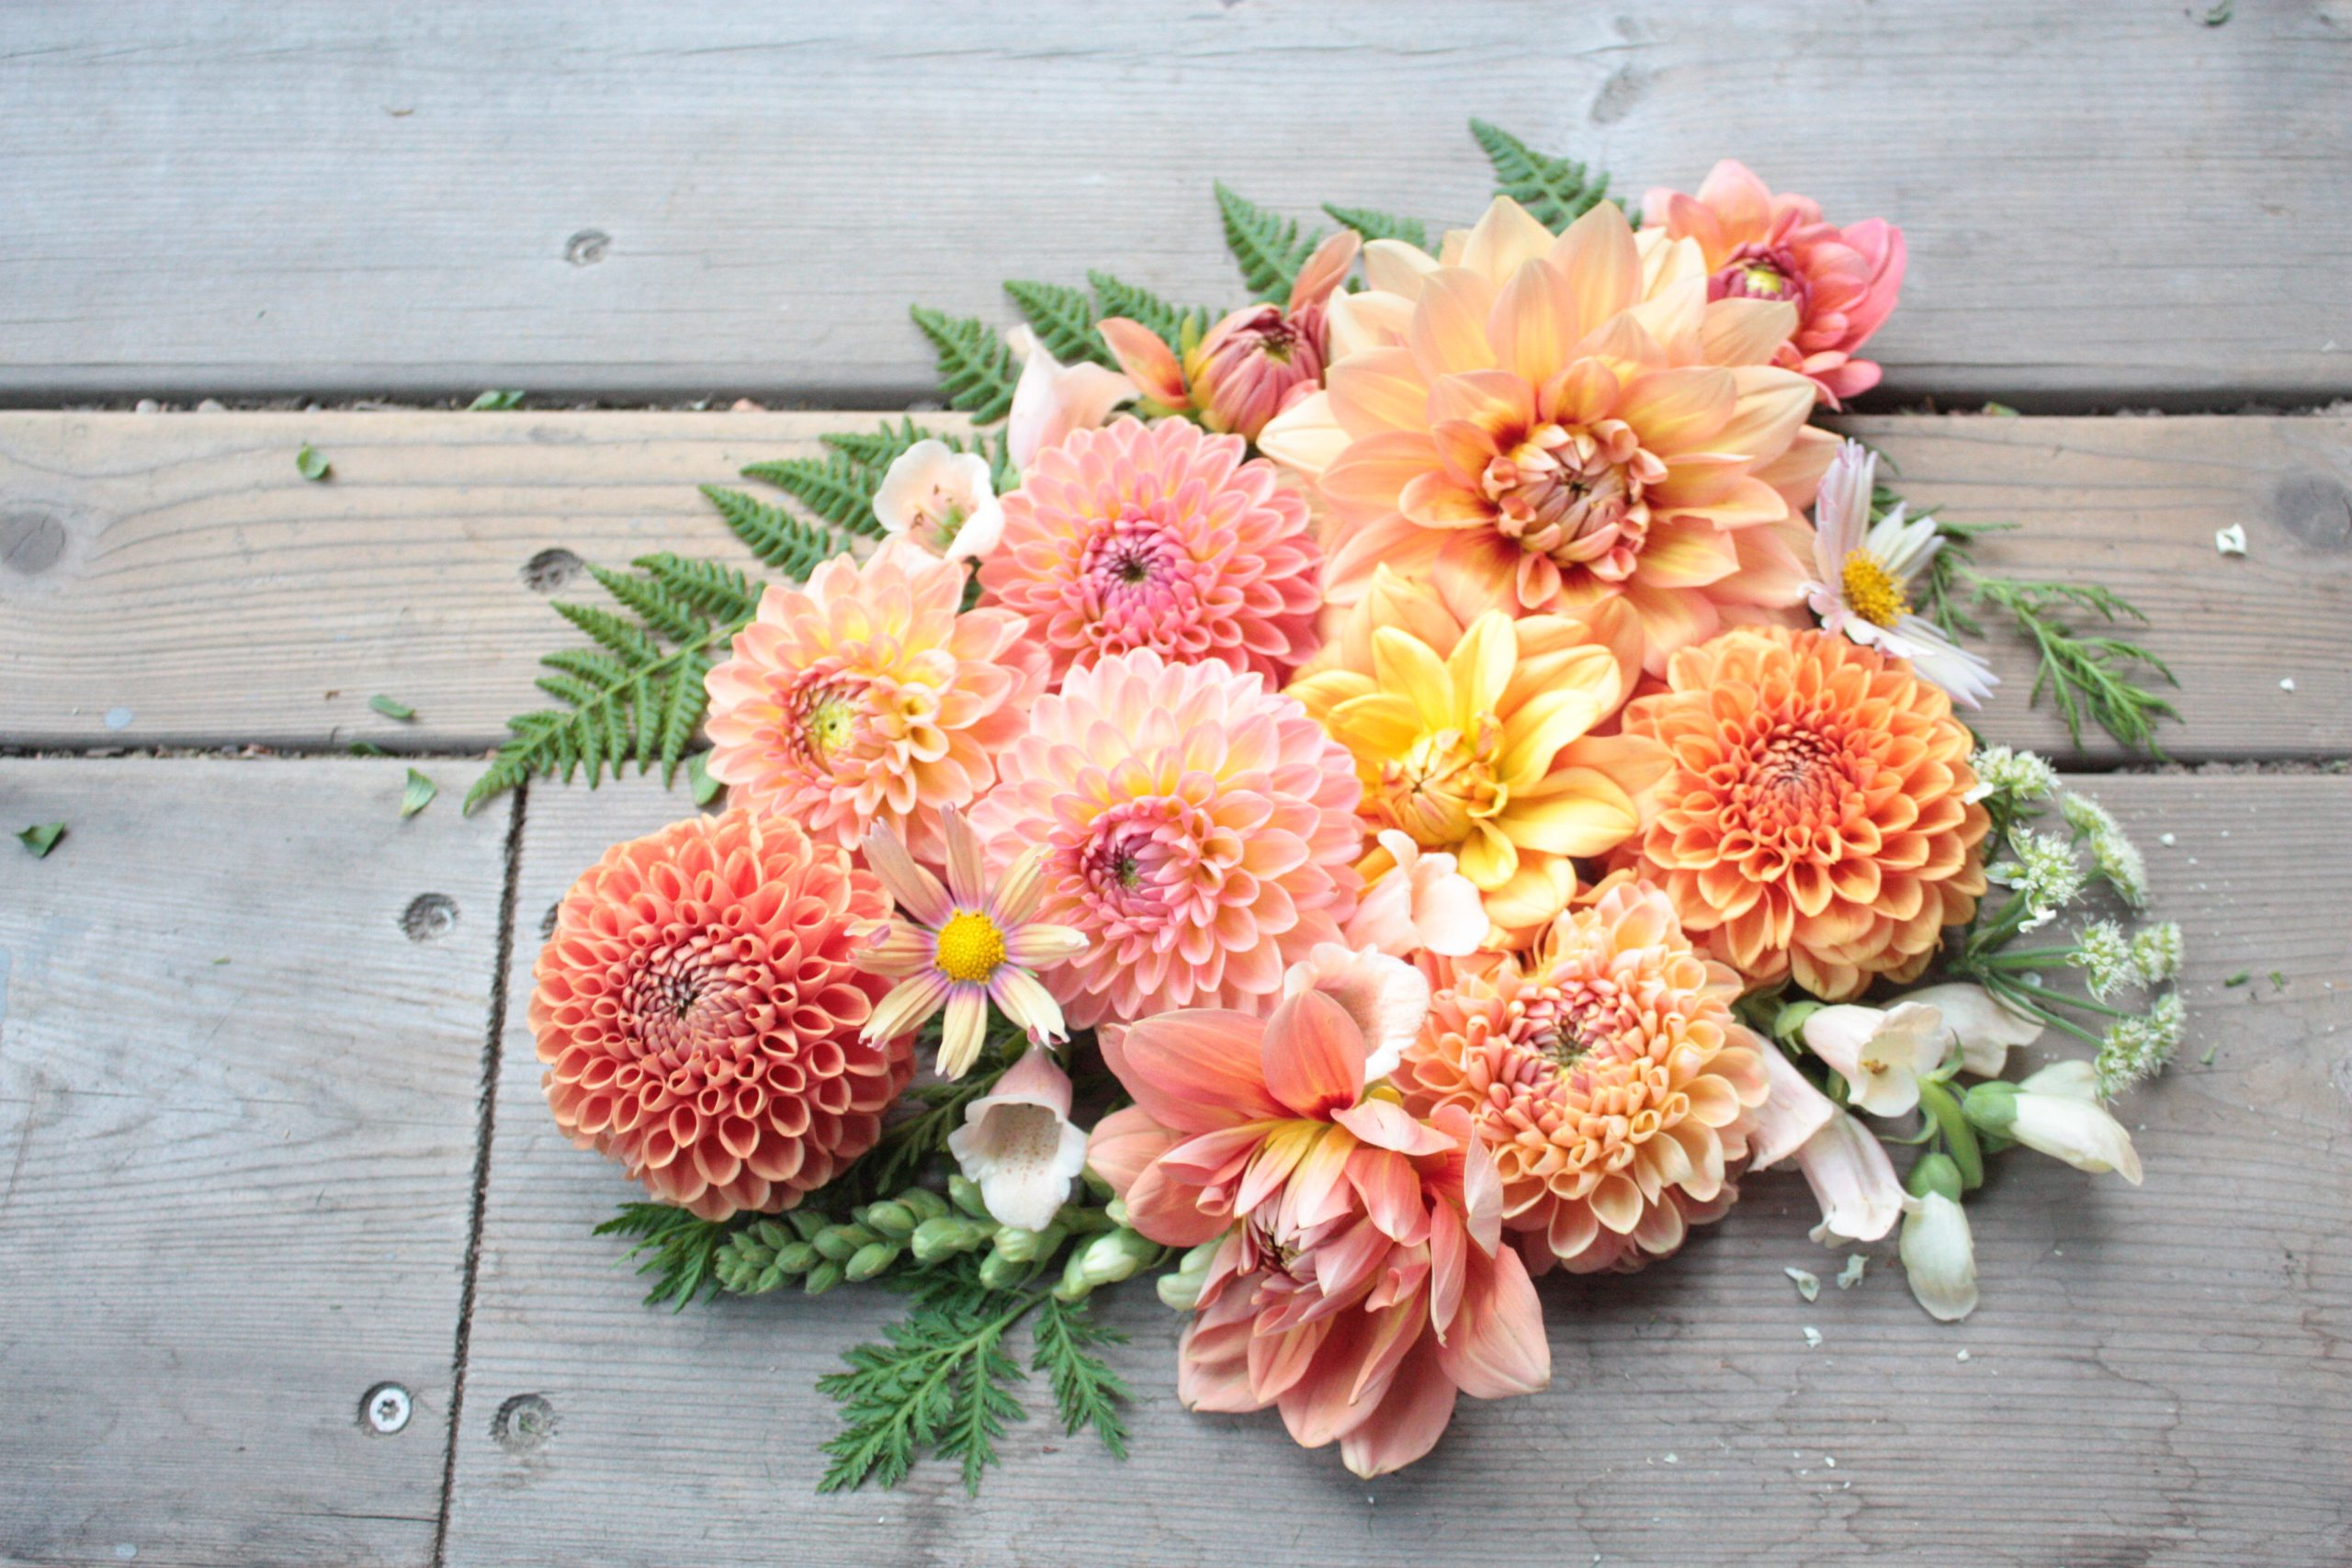 z flat lay photo with dahlia heads, ferns, and cosmos